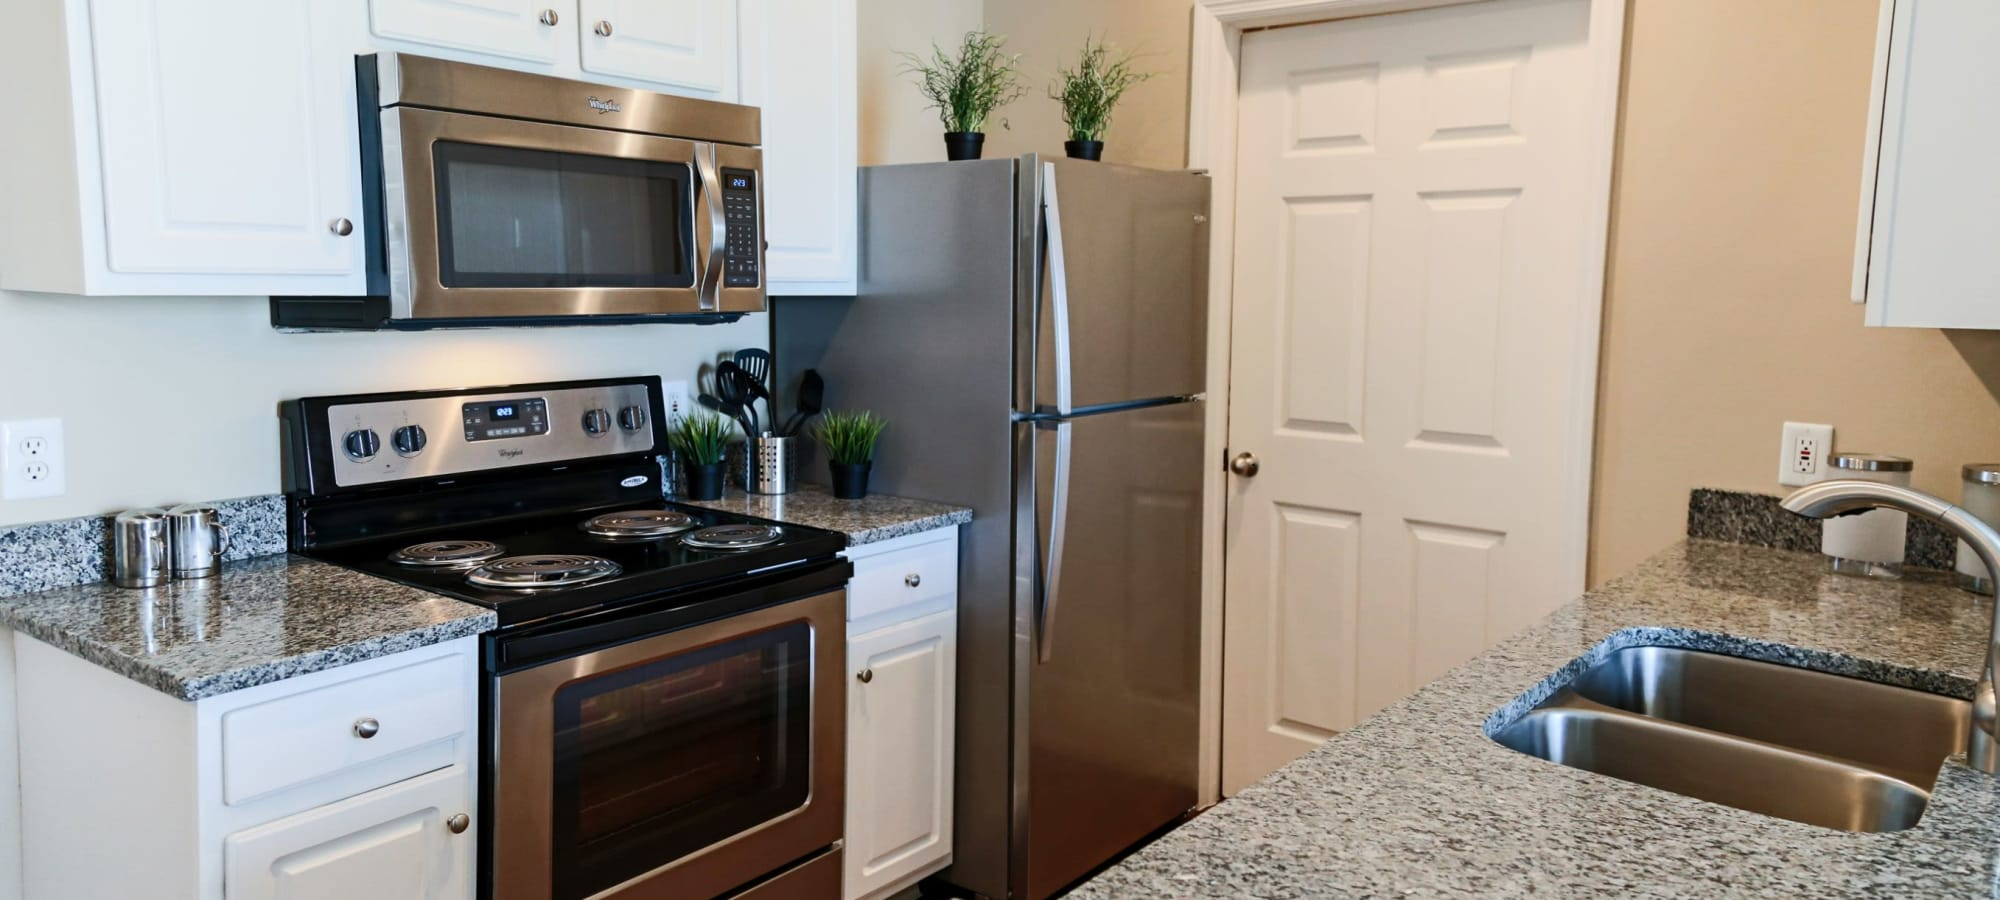 Apartments at The Preserve at Beckett Ridge Apartments & Townhomes in West Chester, Ohio